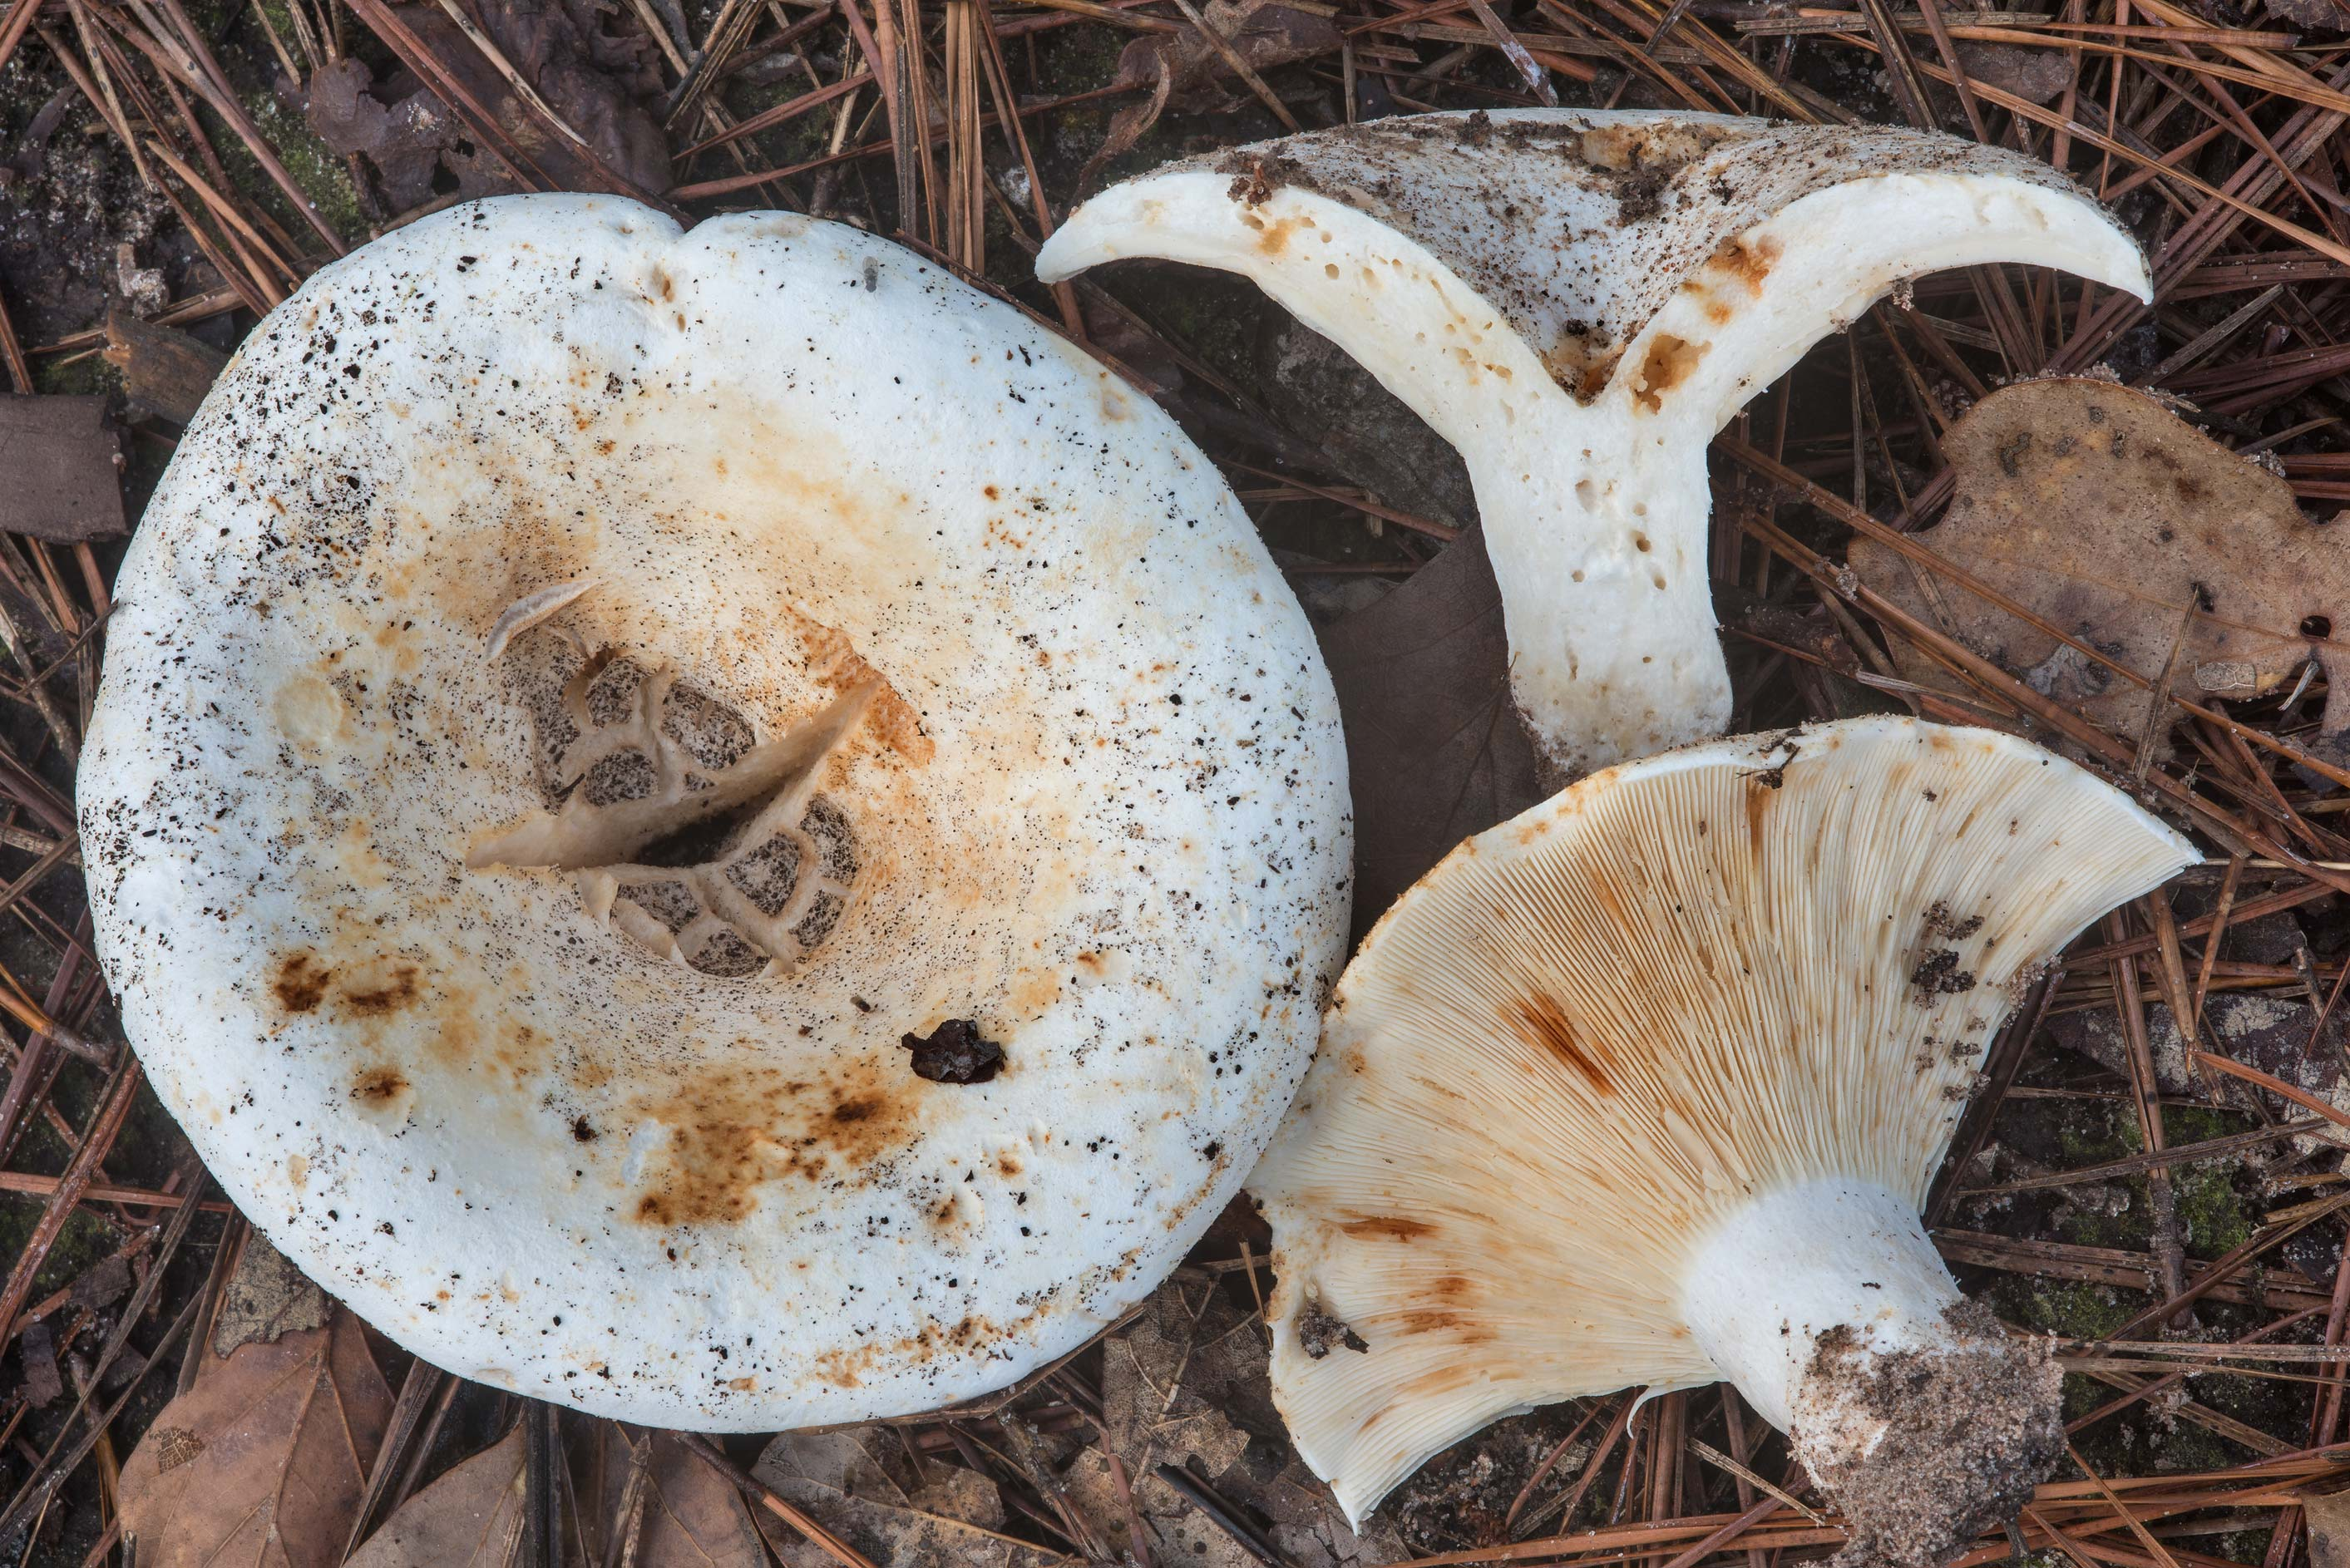 Short-stemmed russula mushrooms (stubby...National Forest. Richards, Texas